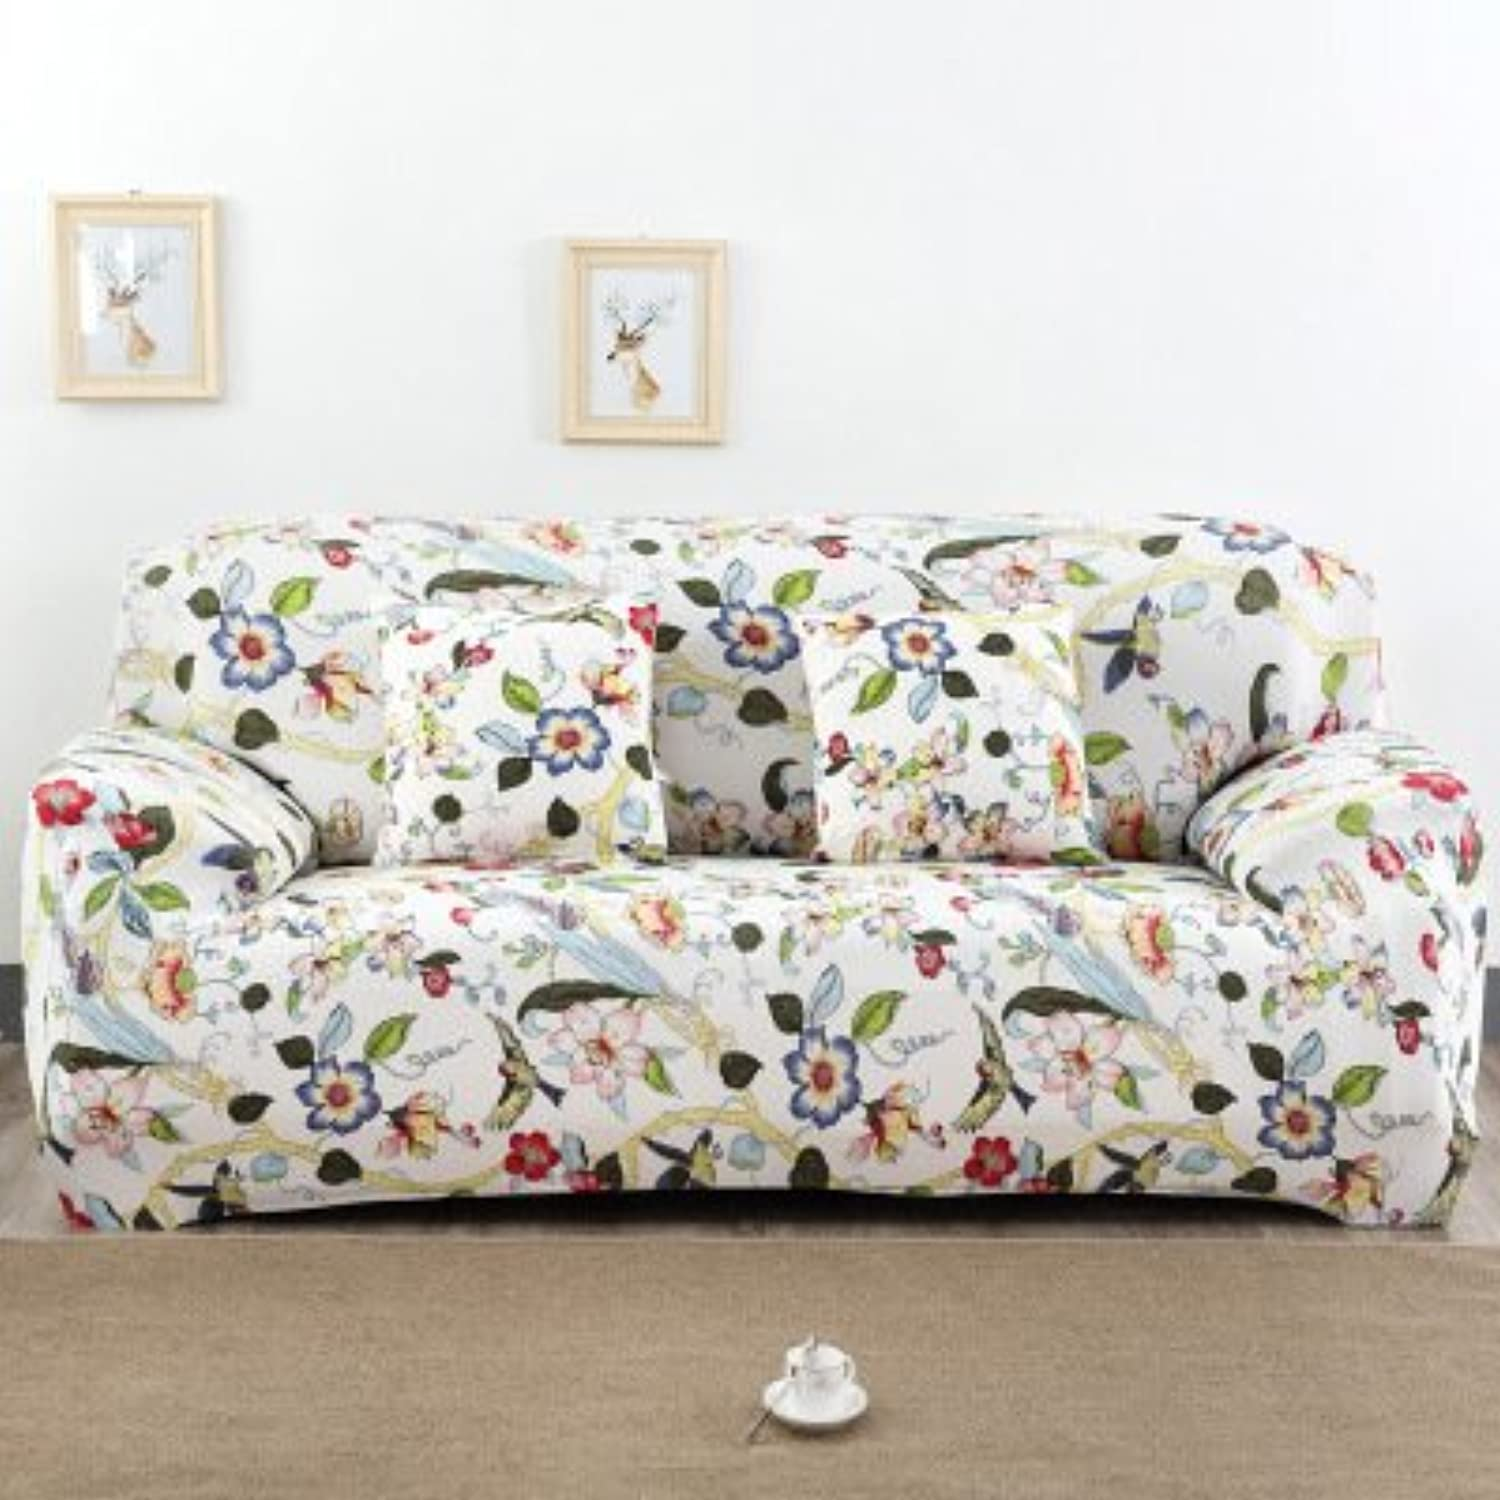 Farmerly WLIARLEO Sofa Cover 100% Polyester Modern Big Elastic Slipcover for Double Three Four Seat Cover for Couch Soft Cover Sofa   Sofa Cover 6, Single seat 90-140cm